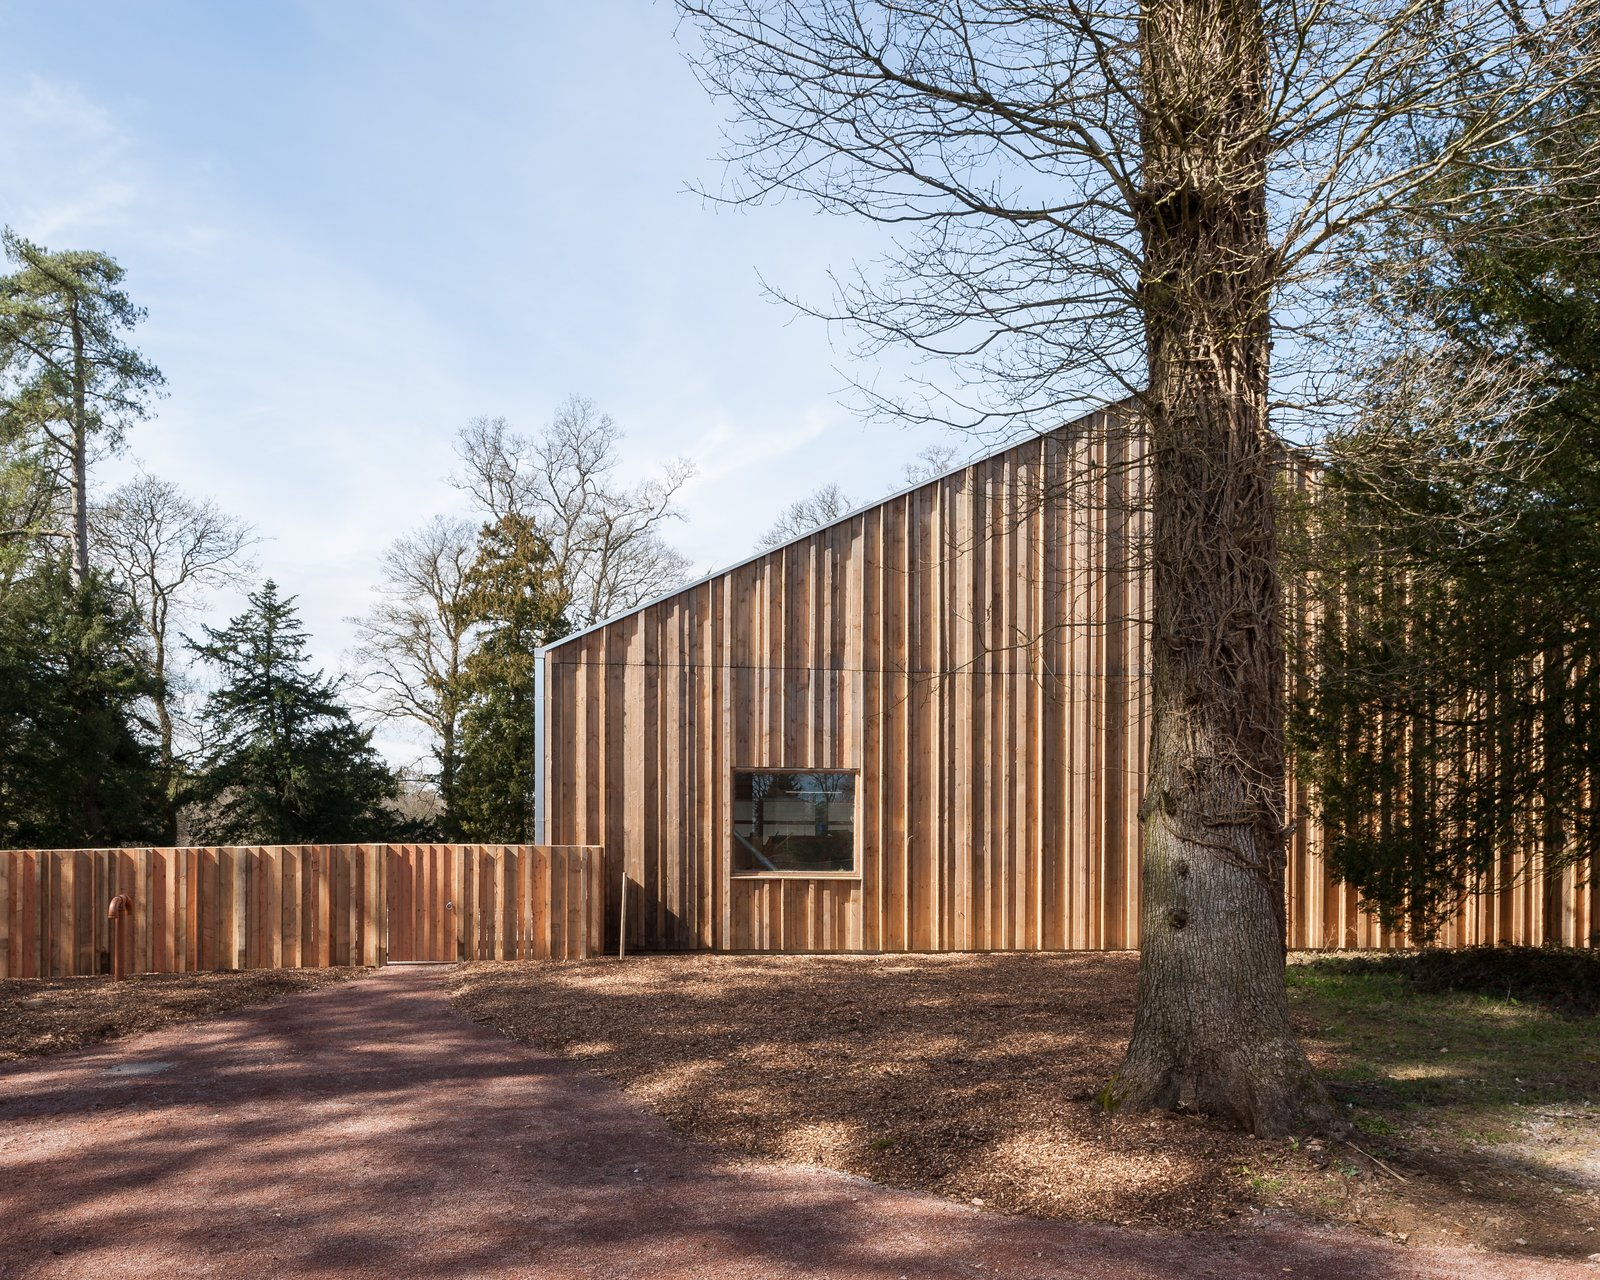 The building was constructed entirely from green timber grown and milled on site at Westonbirt, with a series of interns and apprentices from the Carpenter's Fellowship. The students were up-skilled through the process of working alongside master carpenters.